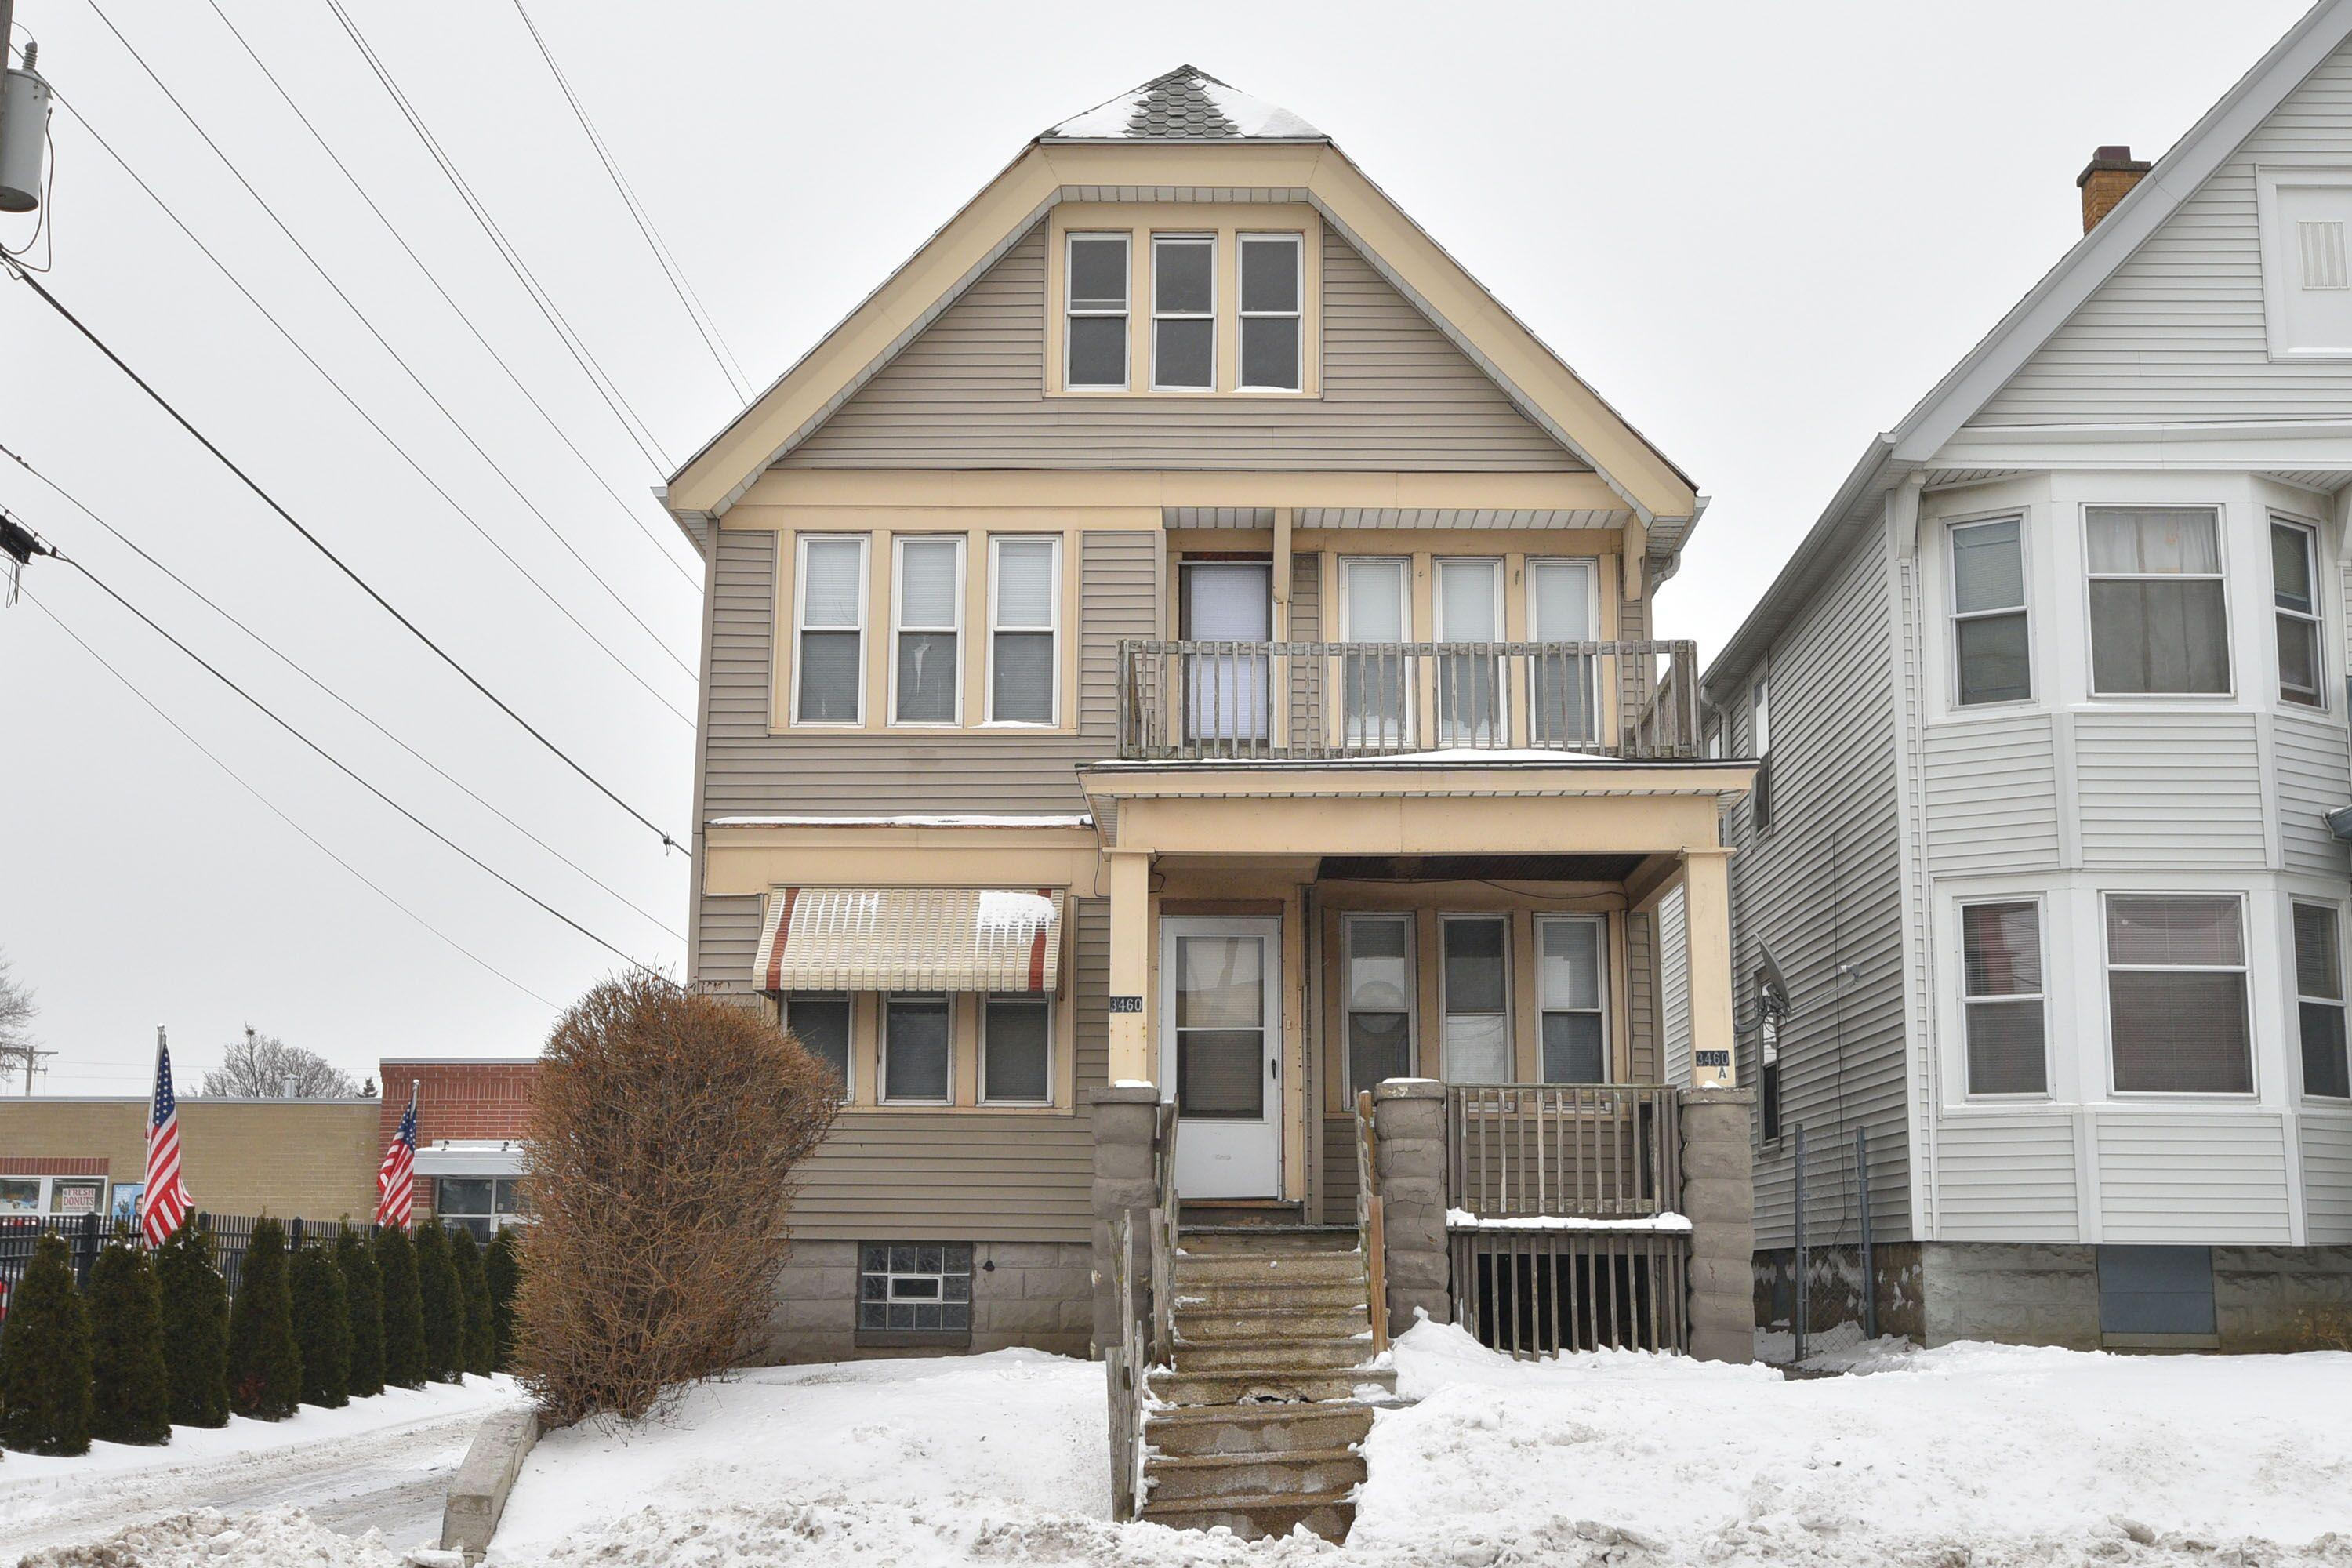 3460 Holton St, Milwaukee, Wisconsin 53212, 2 Bedrooms Bedrooms, 5 Rooms Rooms,1 BathroomBathrooms,Two-Family,For Sale,Holton St,1,1620460